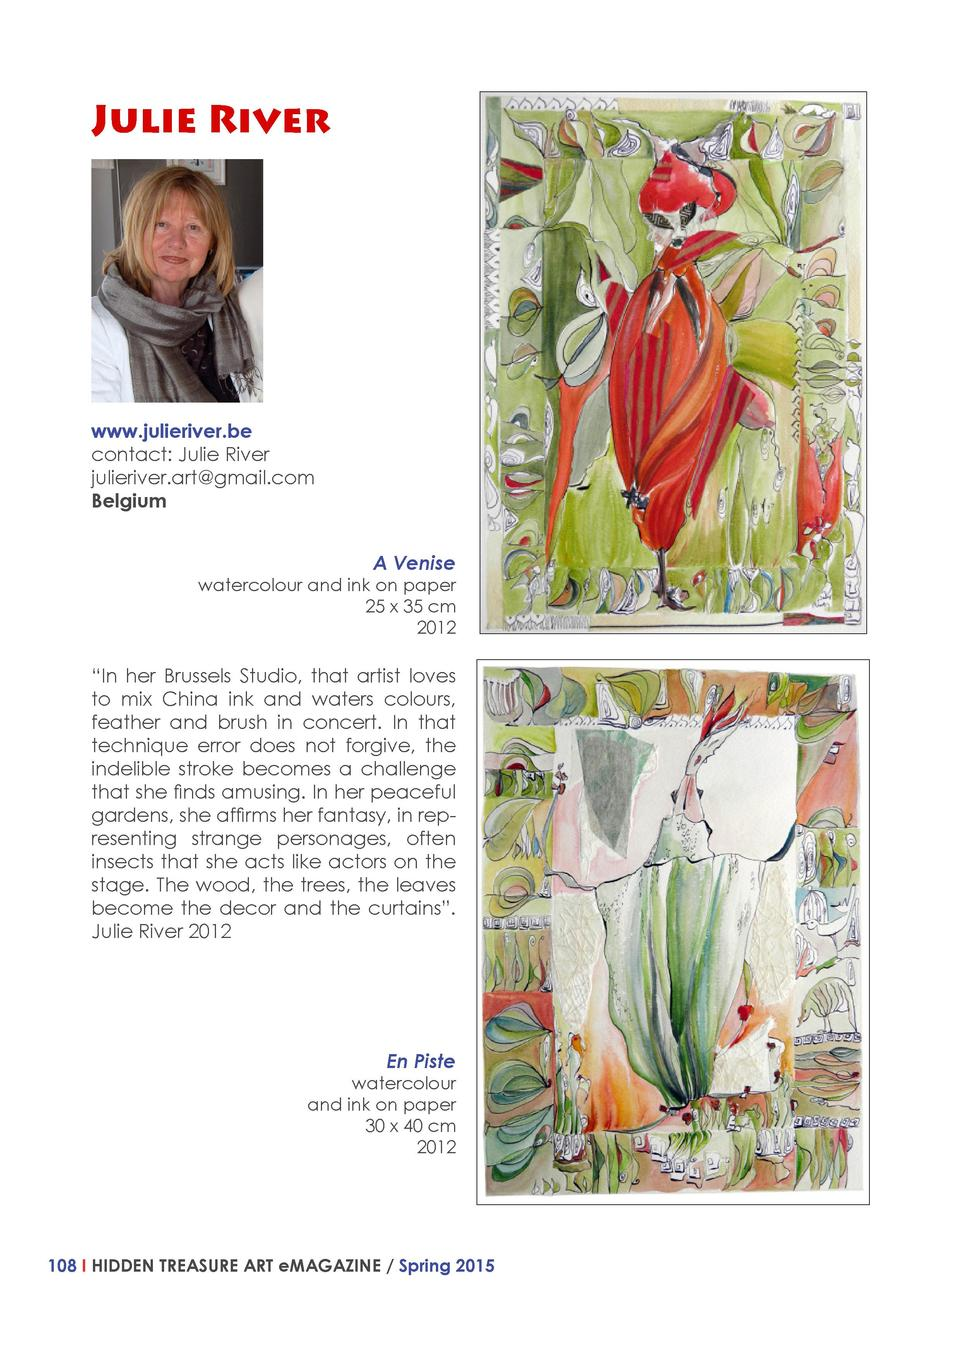 Julie River  www.julieriver.be contact  Julie River julieriver.art gmail.com Belgium A Venise  watercolour and ink on pape...